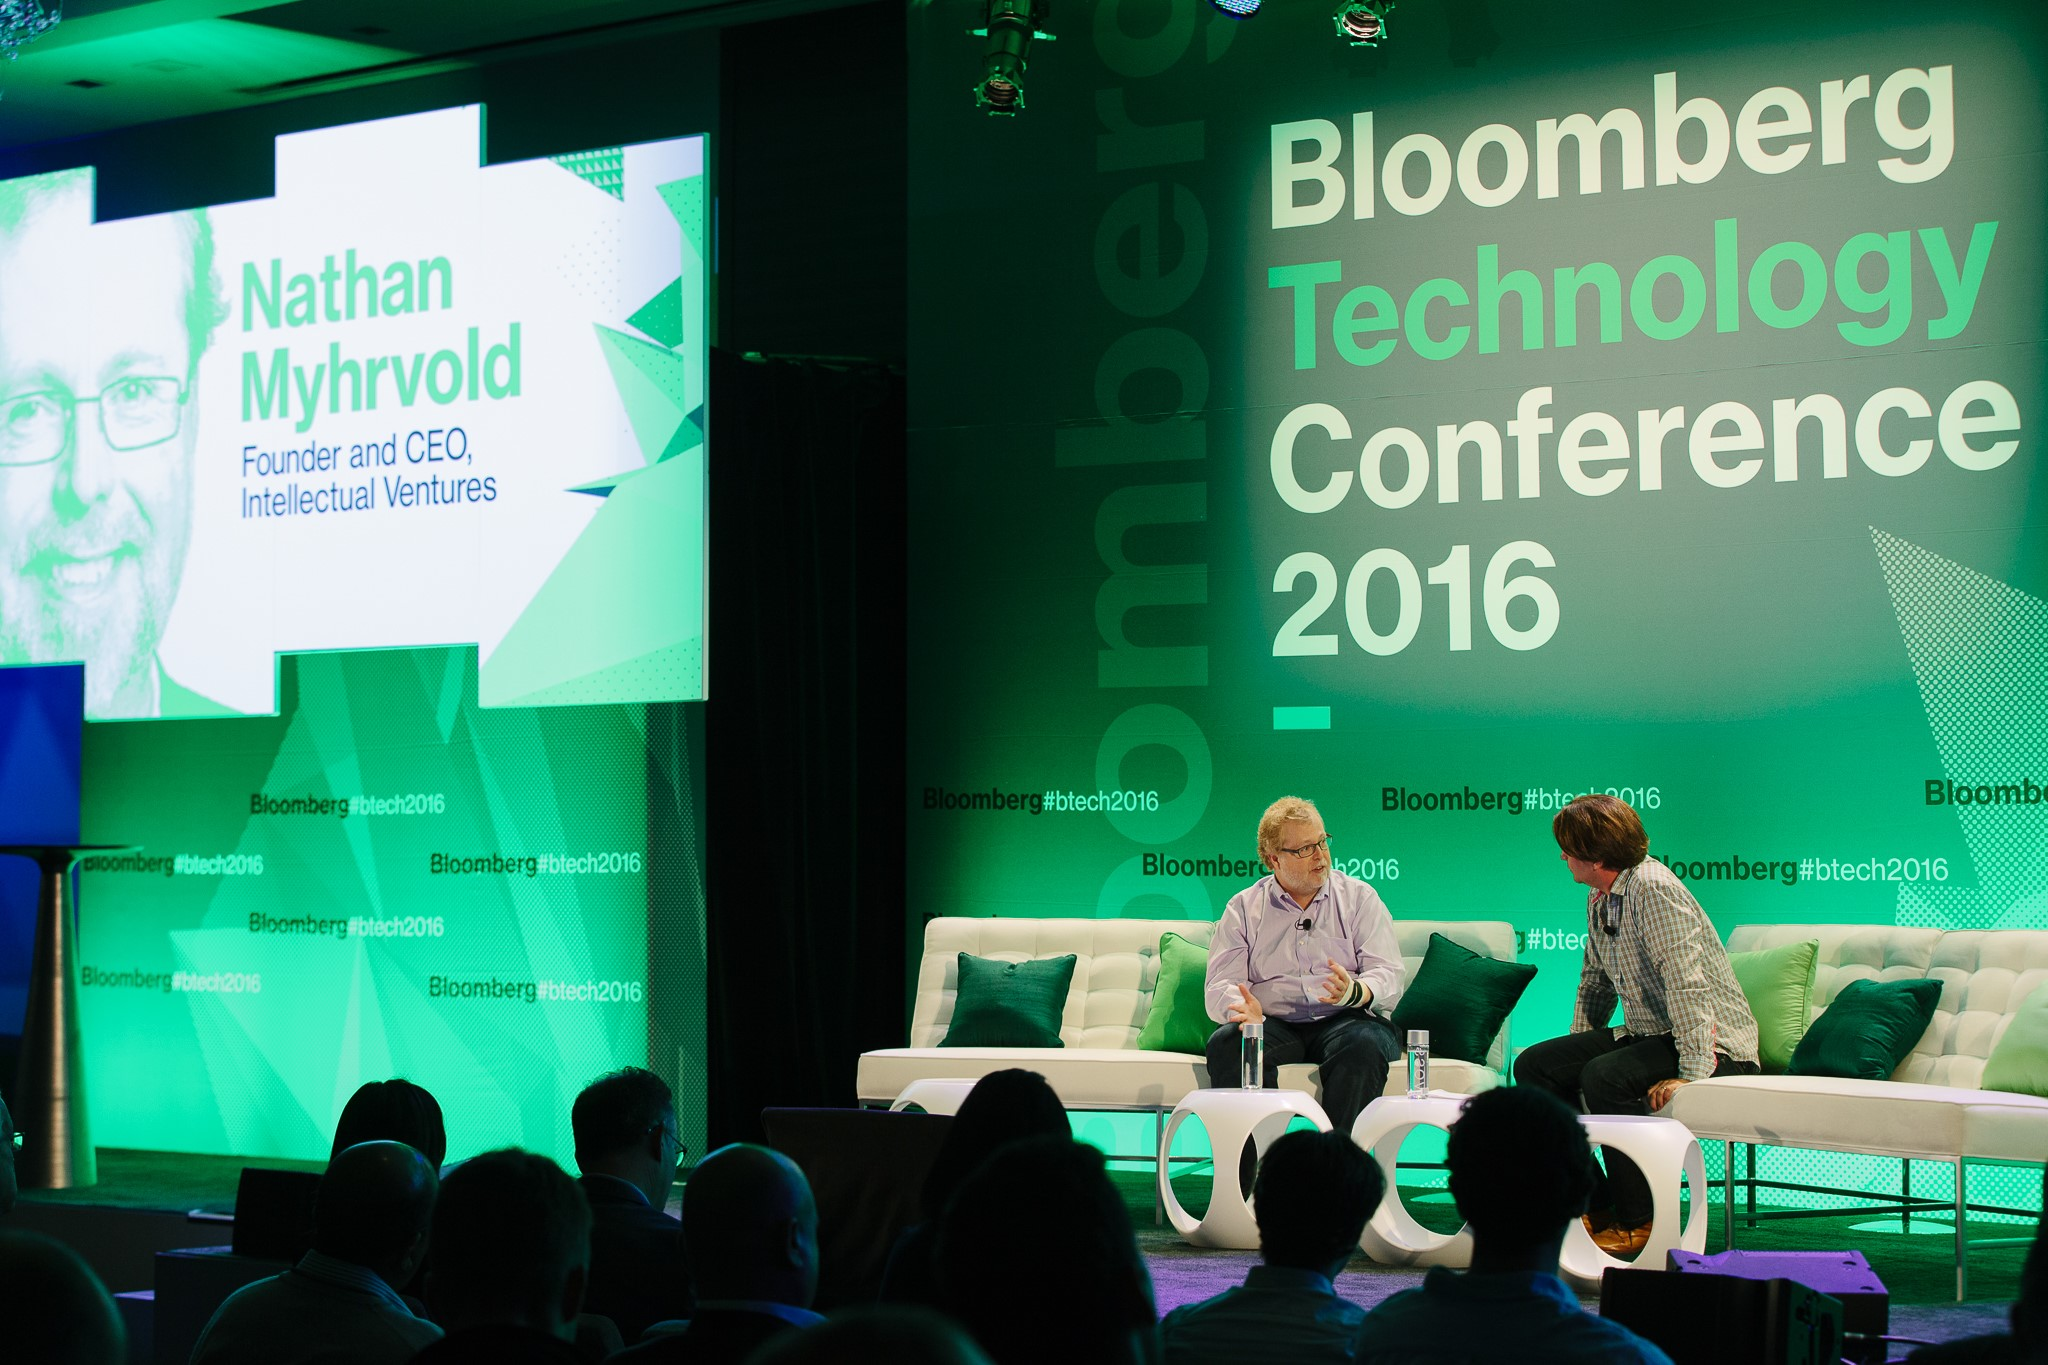 Bloomberg Technology Conference 2016 - Building an Invention Marketplace